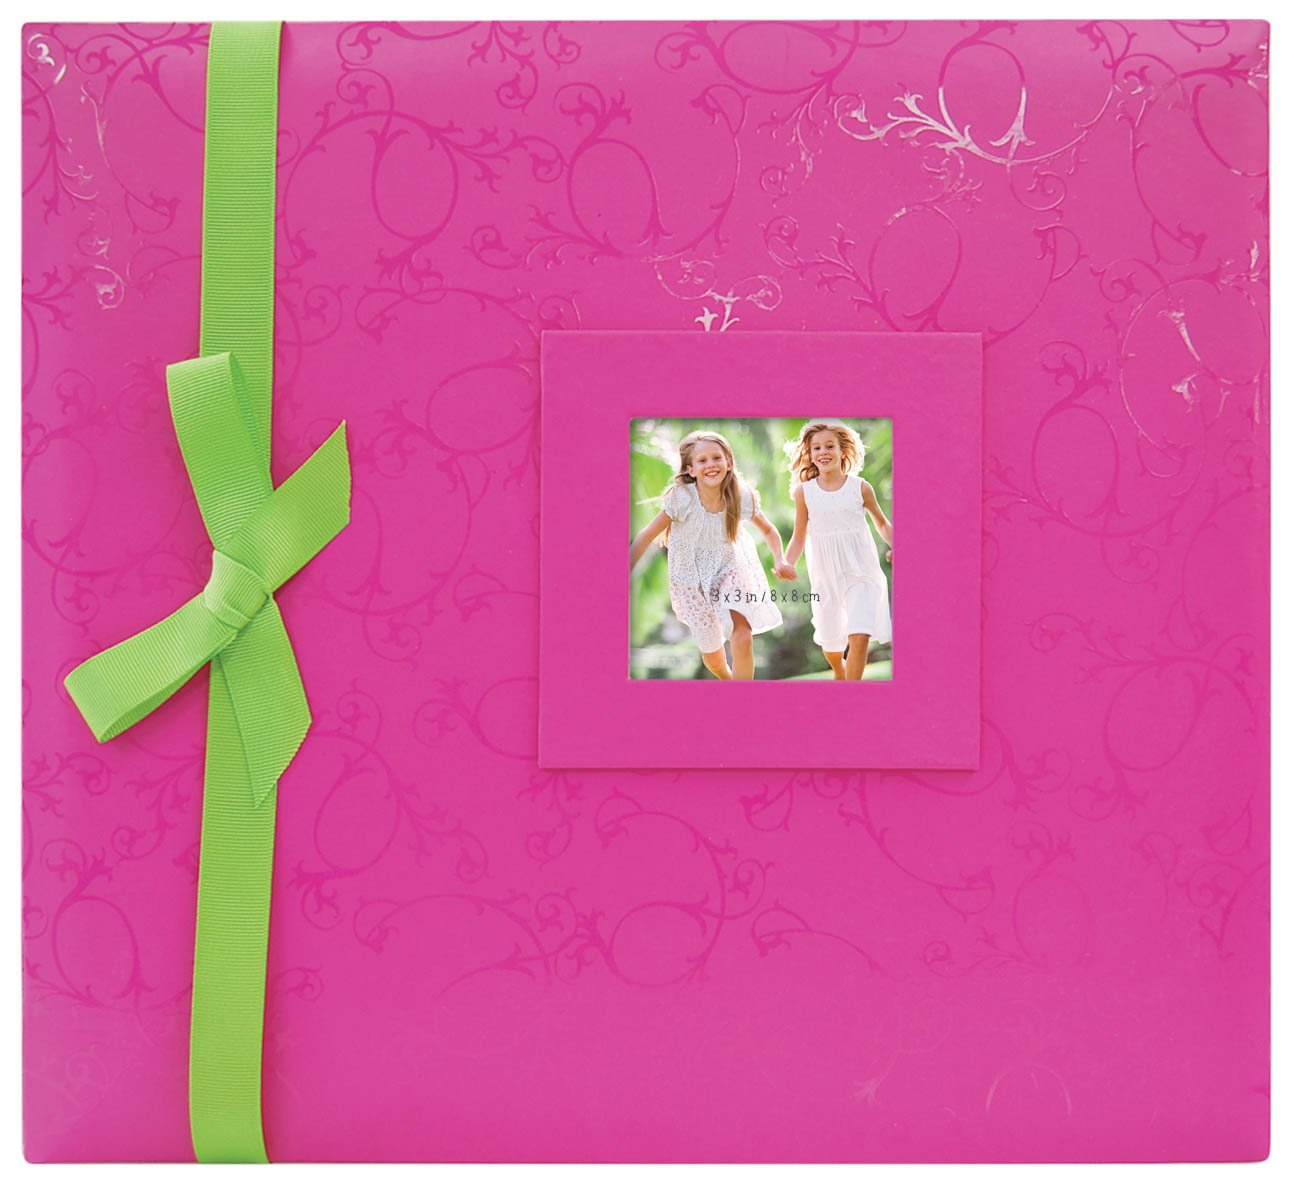 MCS MBI 13.5x12.5 Inch Embossed Gloss Brights Scrapbook Album with 12x12 Inch Pages, Pink (866920)